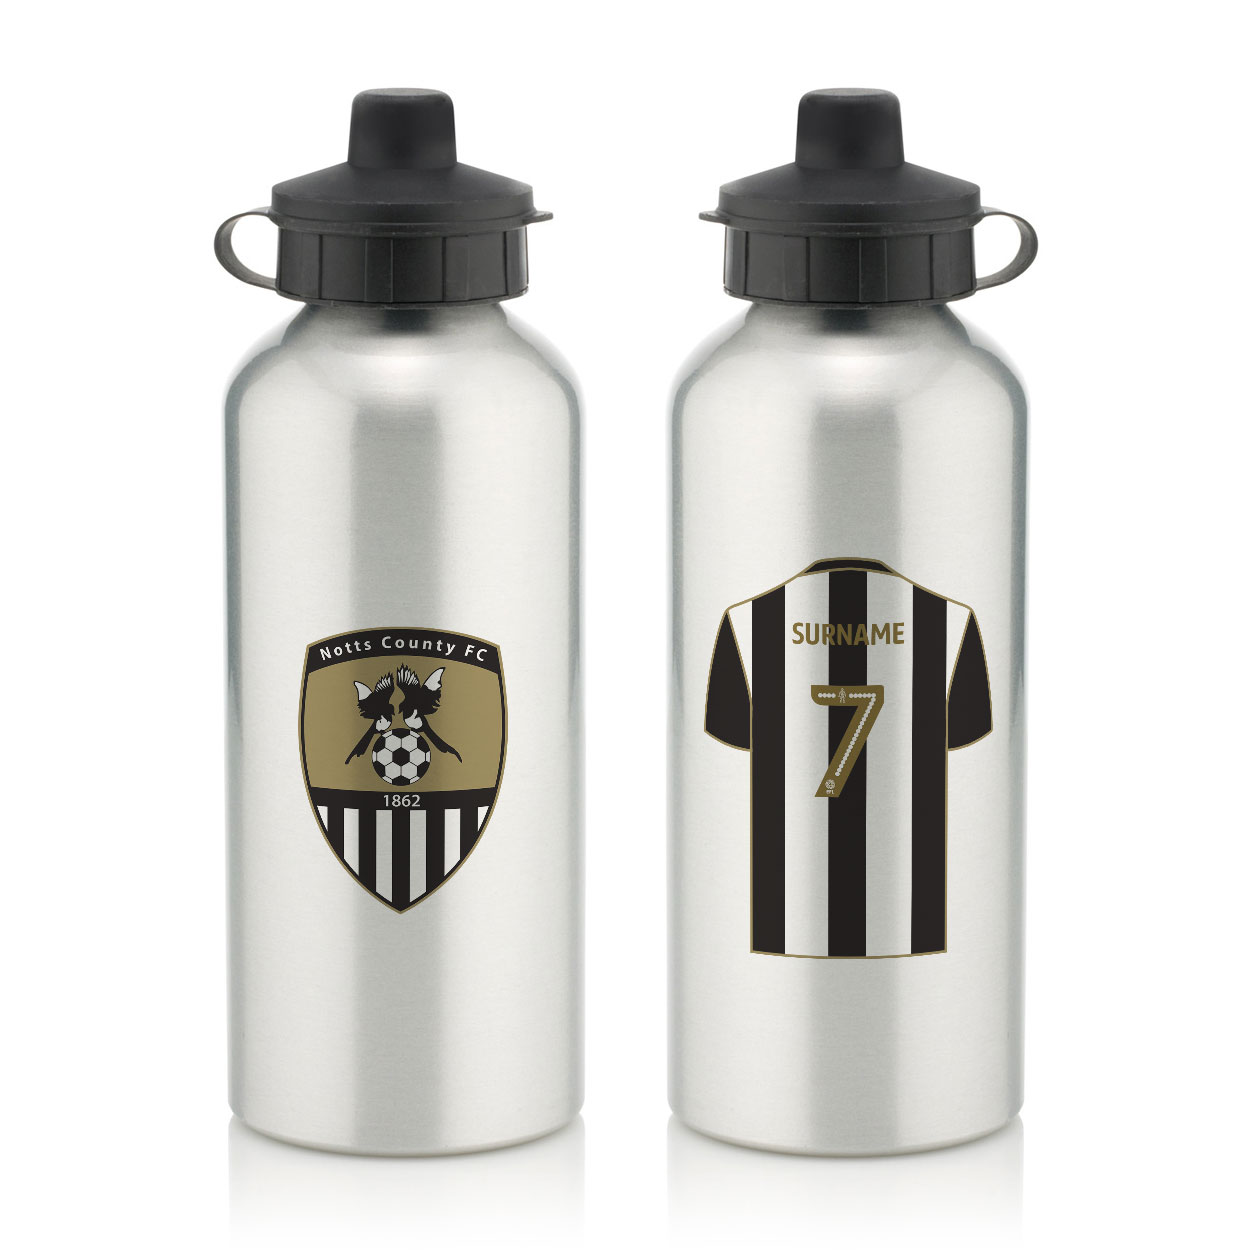 Notts County FC Aluminium Water Bottle